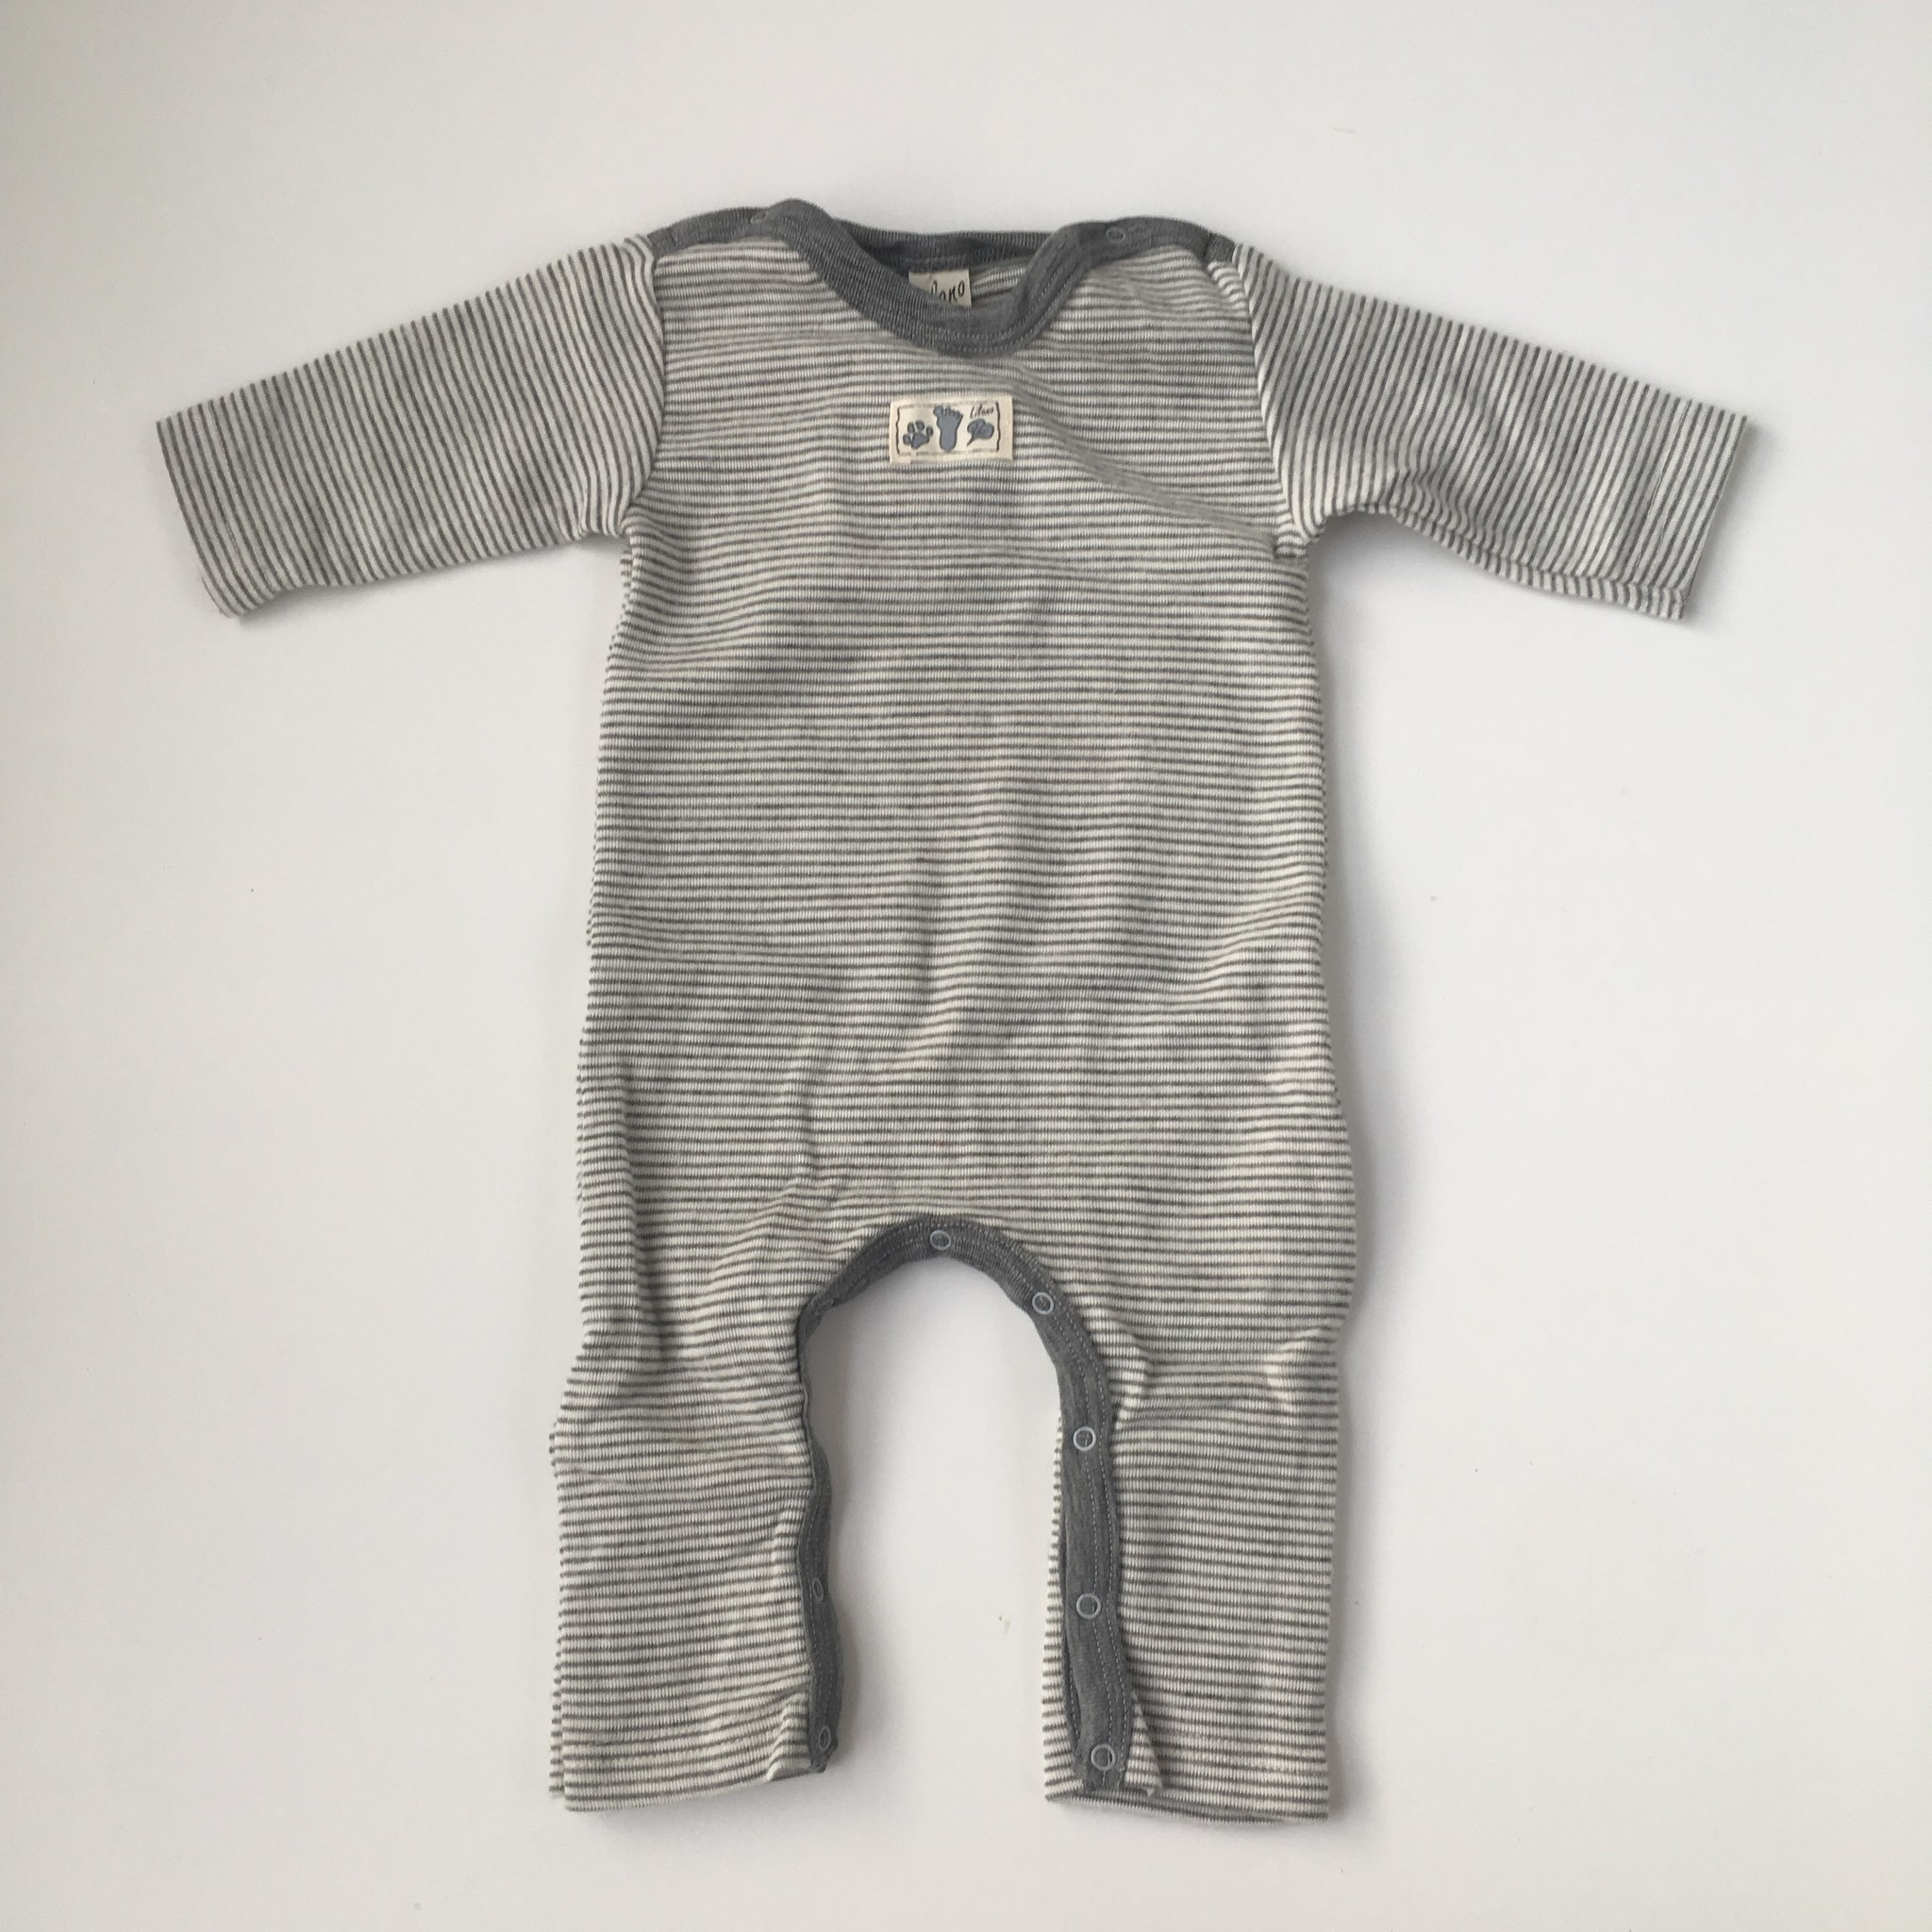 Lilano  wool silk baby suit / sleeping suit with fold-over feet - 70% organic merino wool / 30% silk - white gray striped - 50 to 98